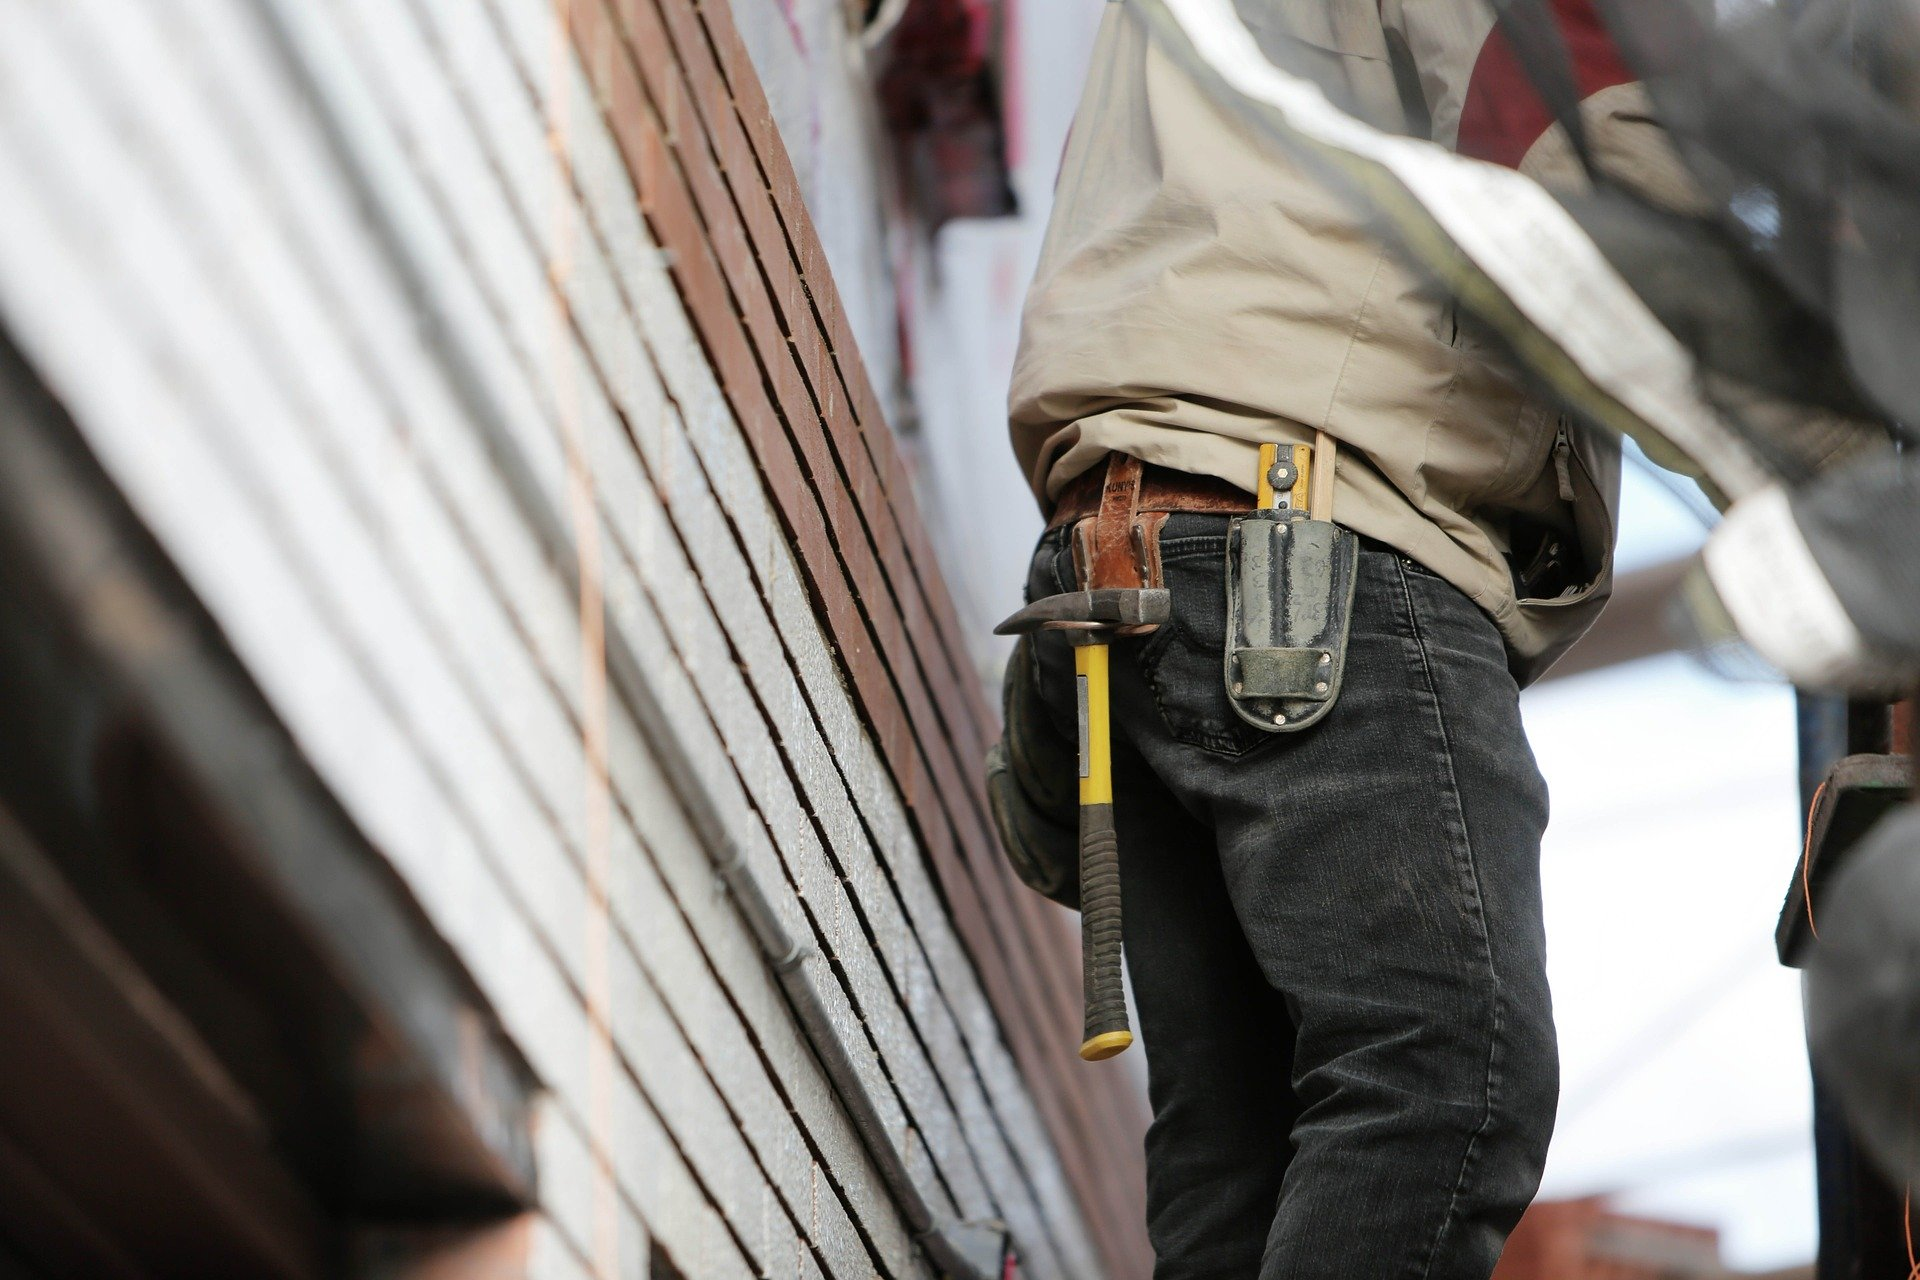 Tennessee Home Improvement Contractor Bond